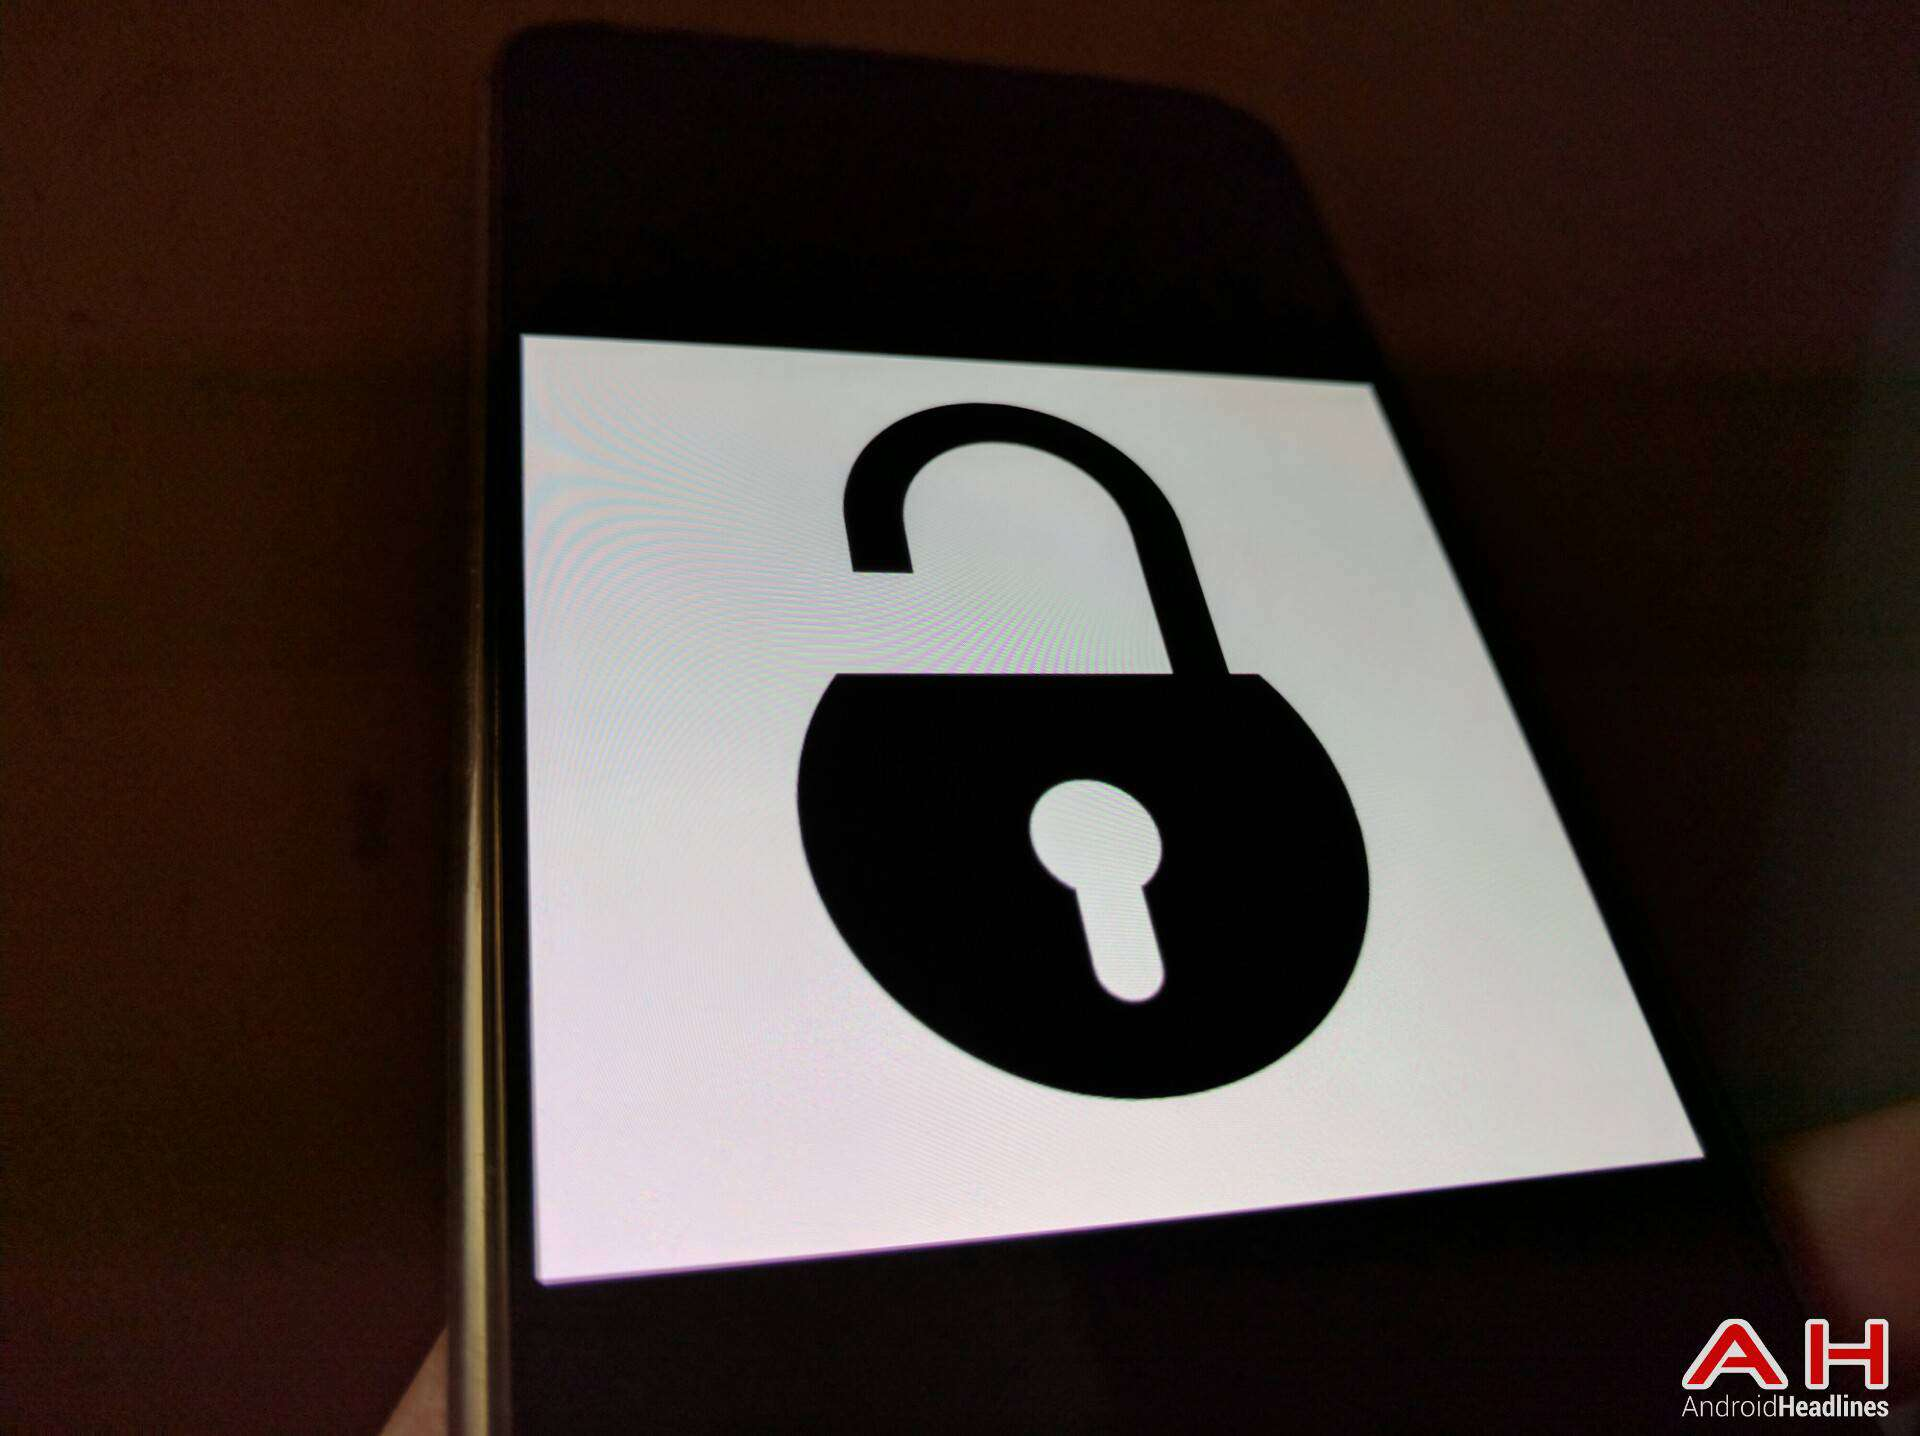 http://www.androidheadlines.com/2016/11/tor-enabled-phone-offers-various-layers-of-security.html